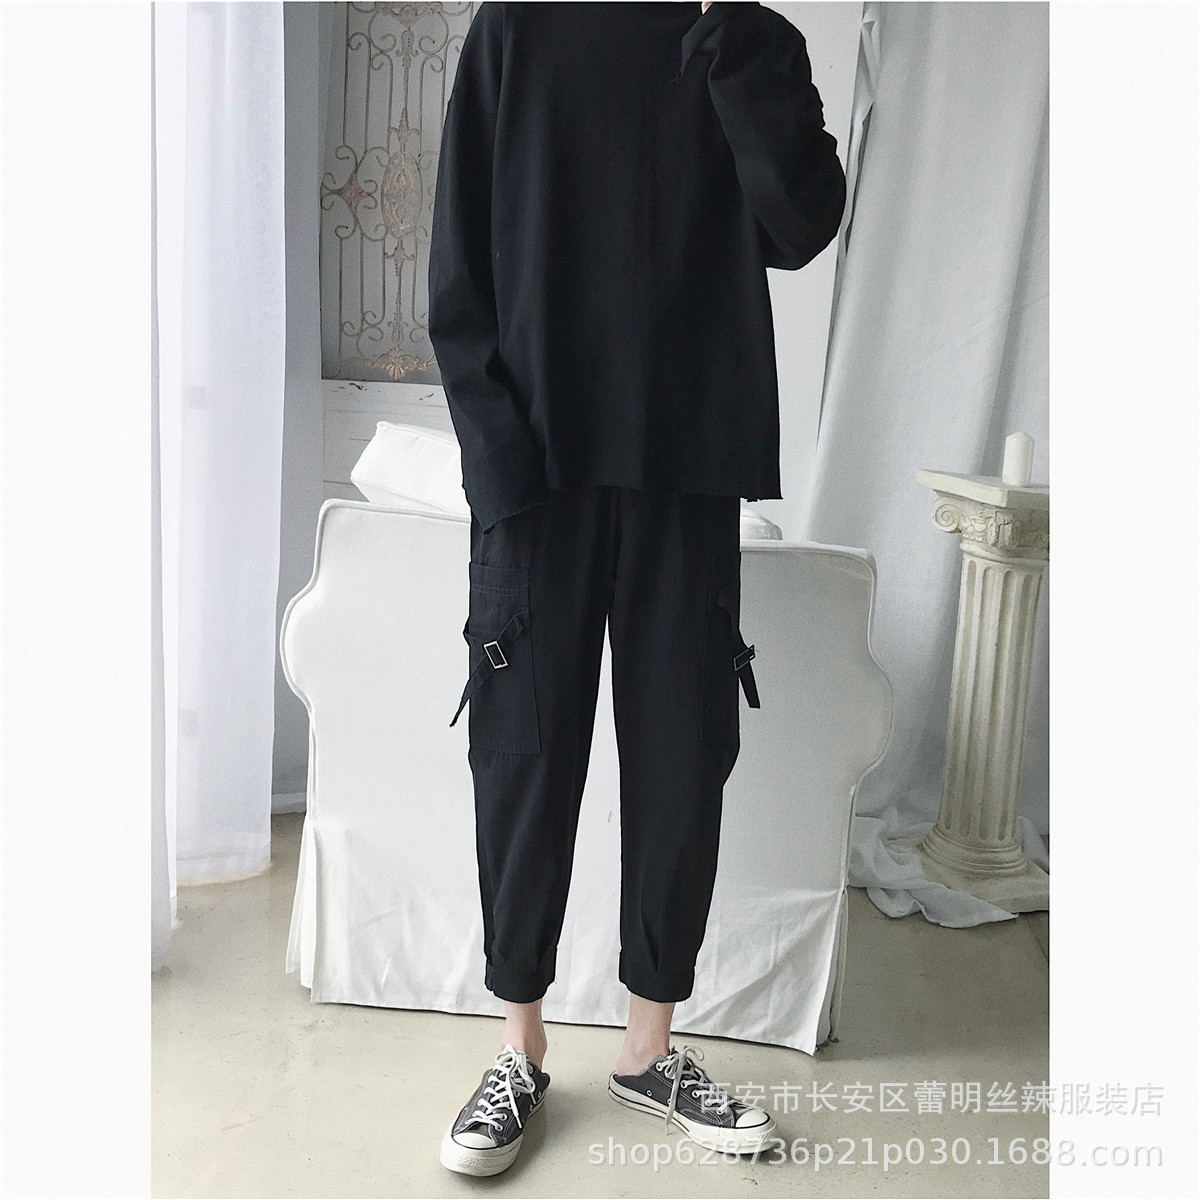 Melody Windmill Capri Ankle Banded Pants Men's Casual Pants Loose Autumn Thin Trend Versatile Korean-style Black And White With